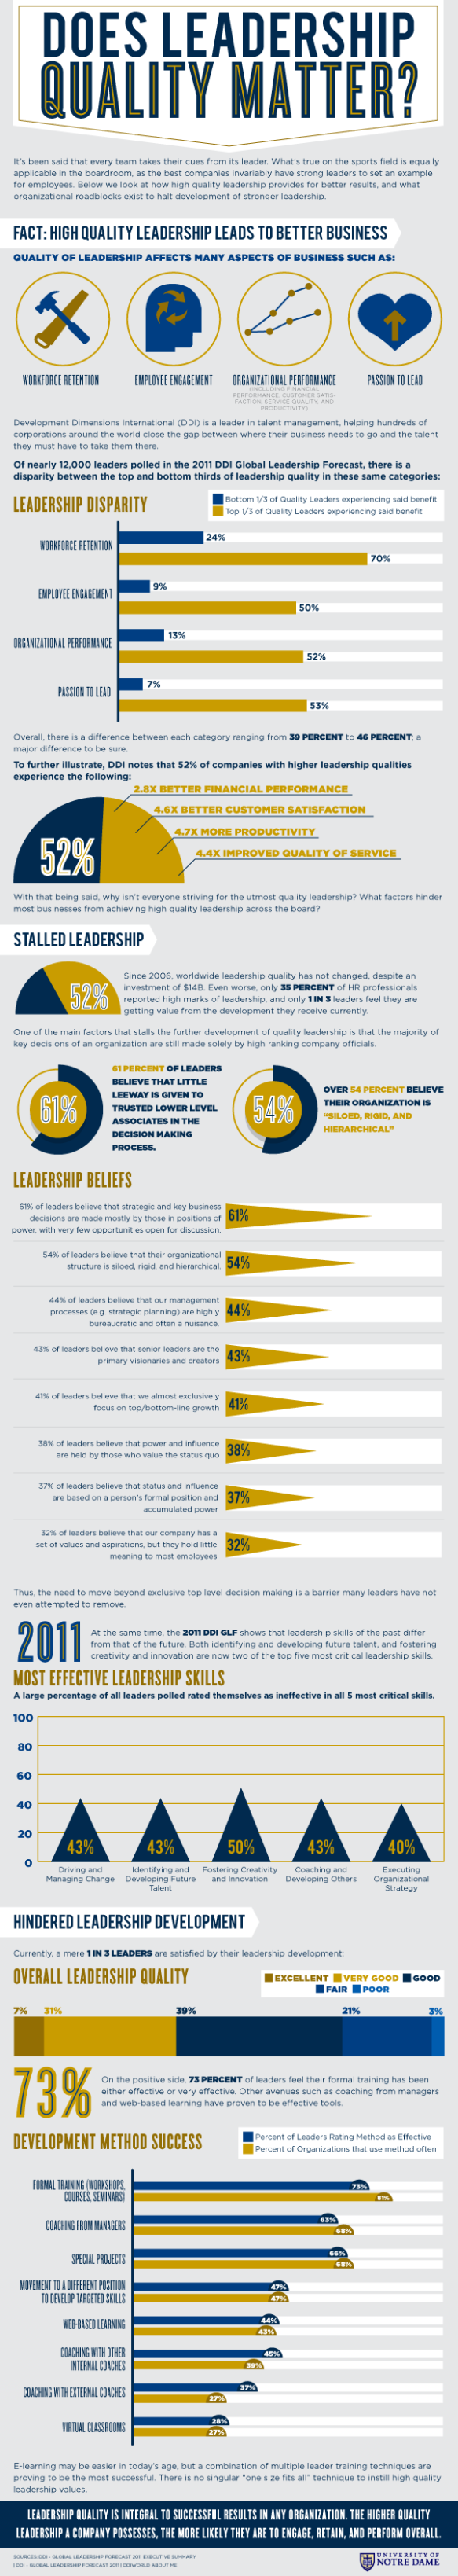 leadership_infographic_nd